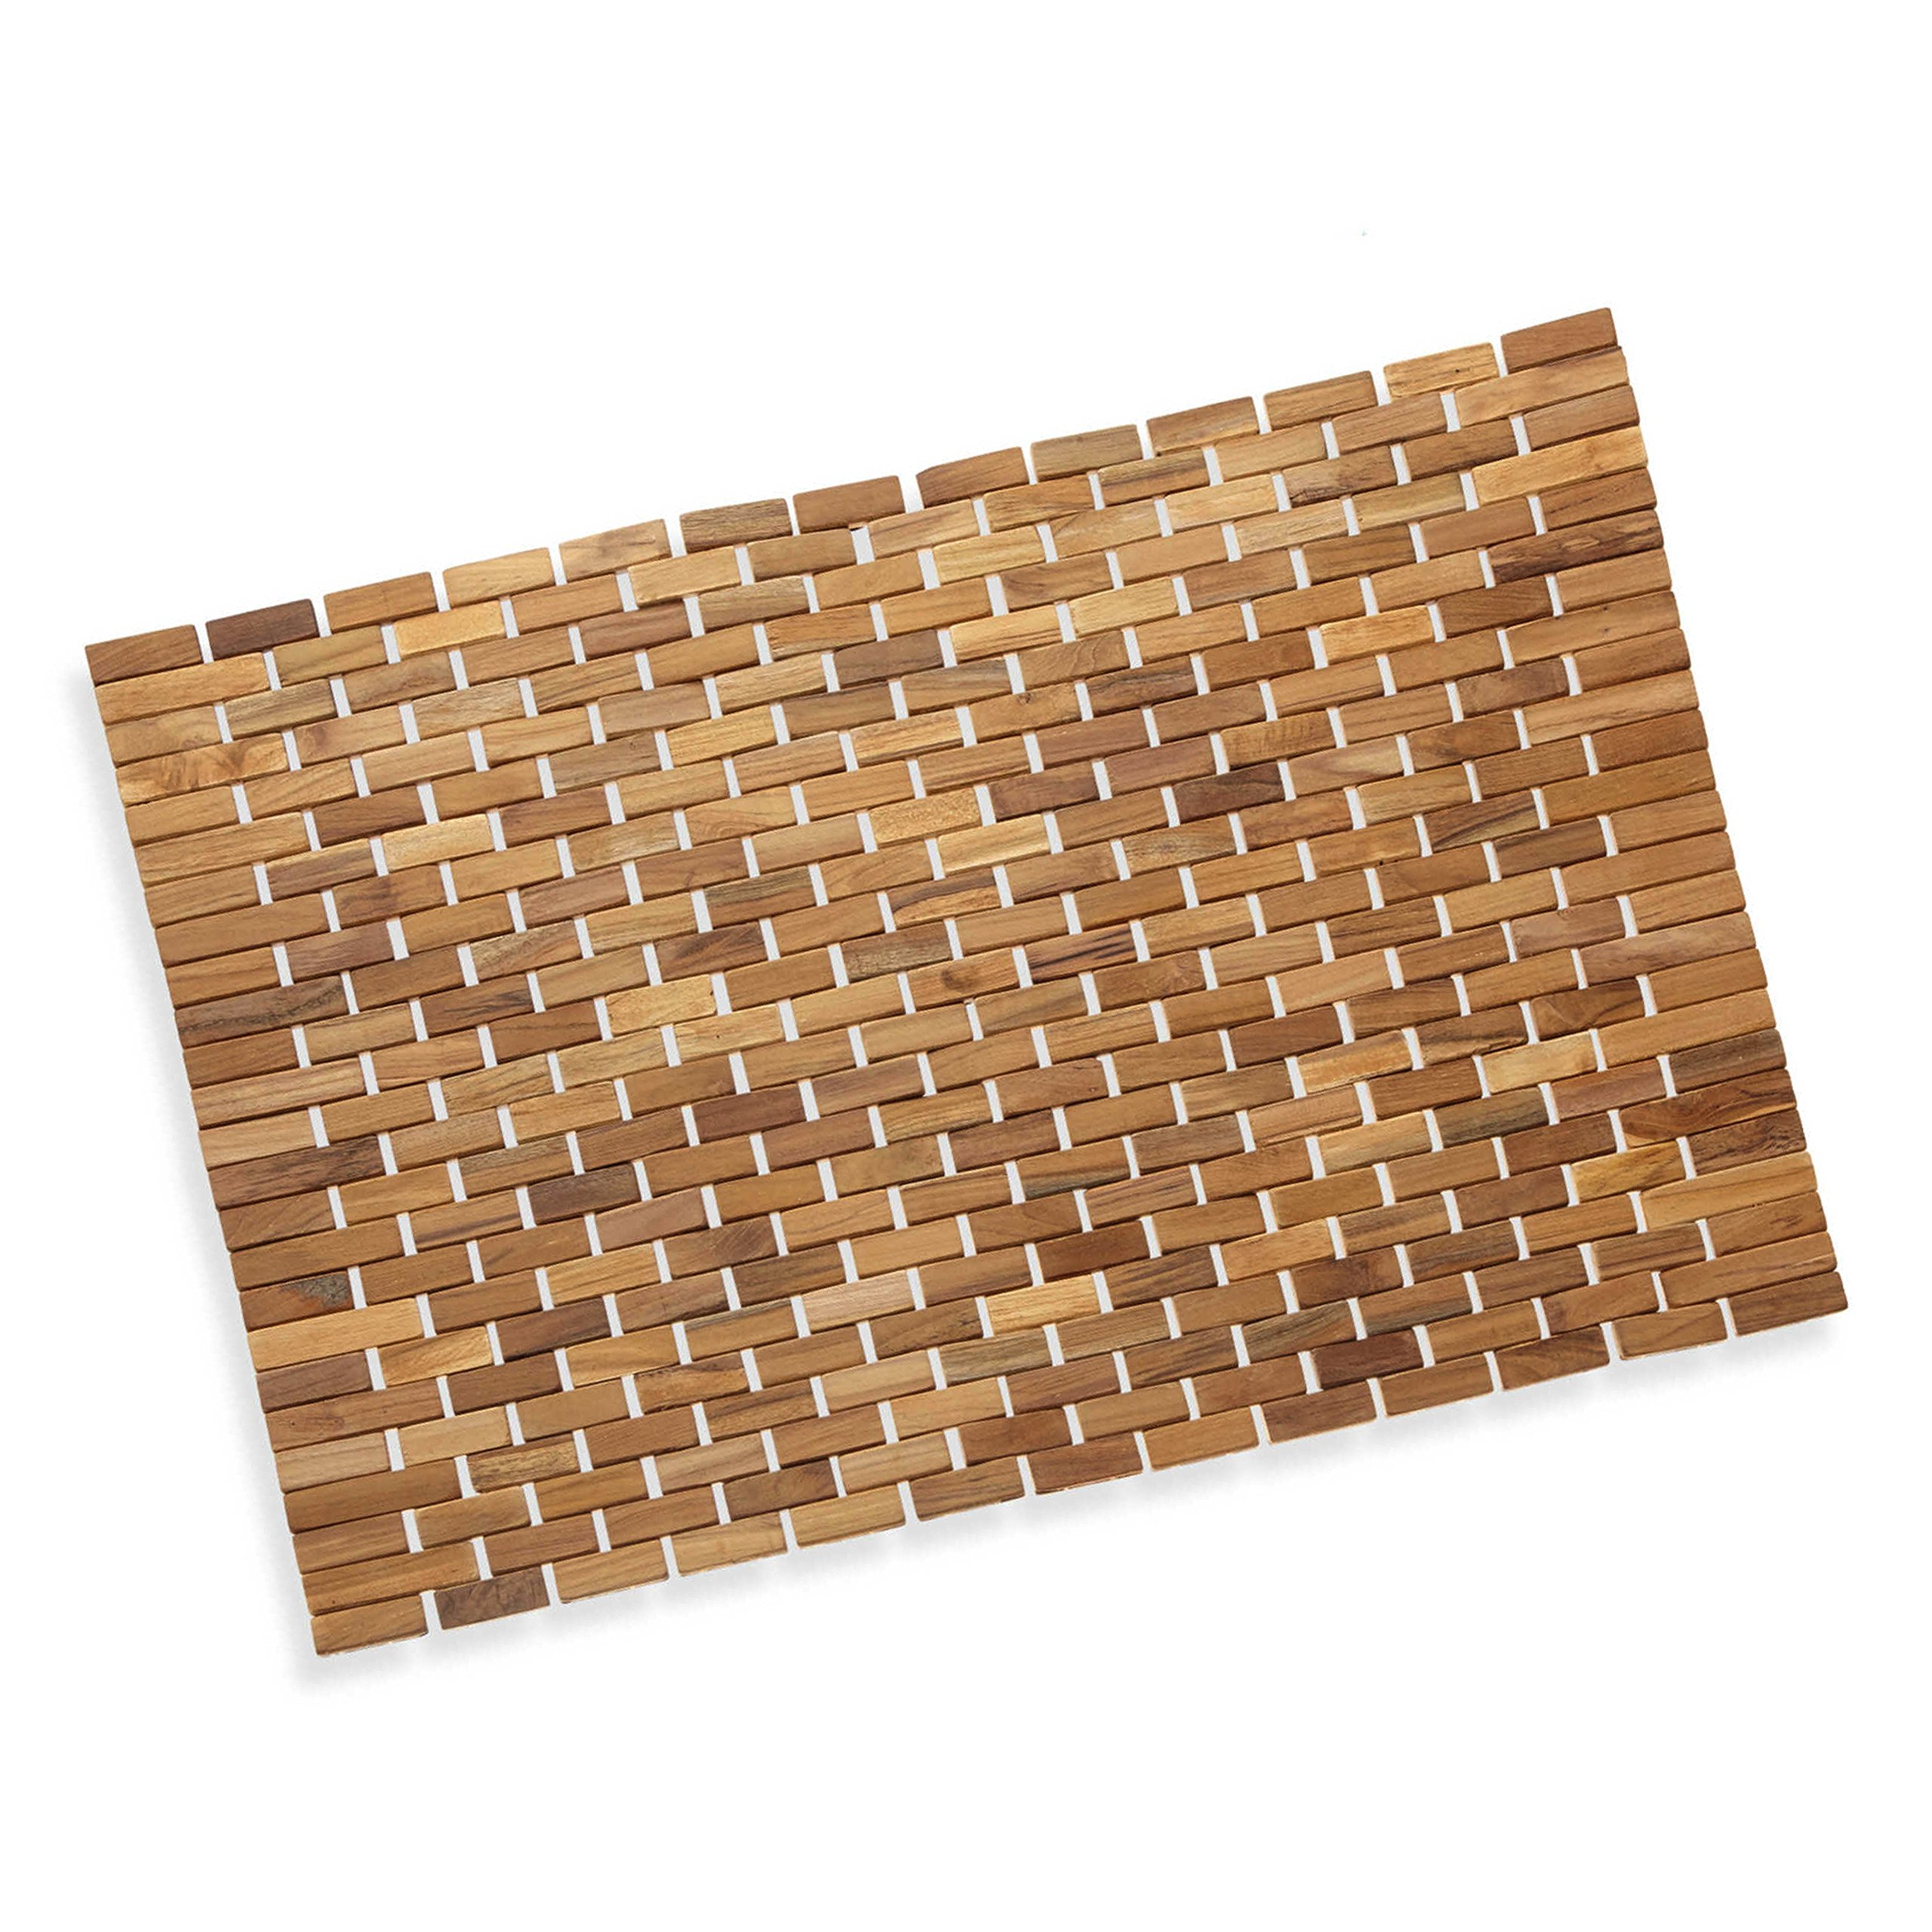 Luxurious Bamboo Bath Mat For Shower, Bath, Spa Or Sauna 27x19 Large By Precision Works by Precision Works